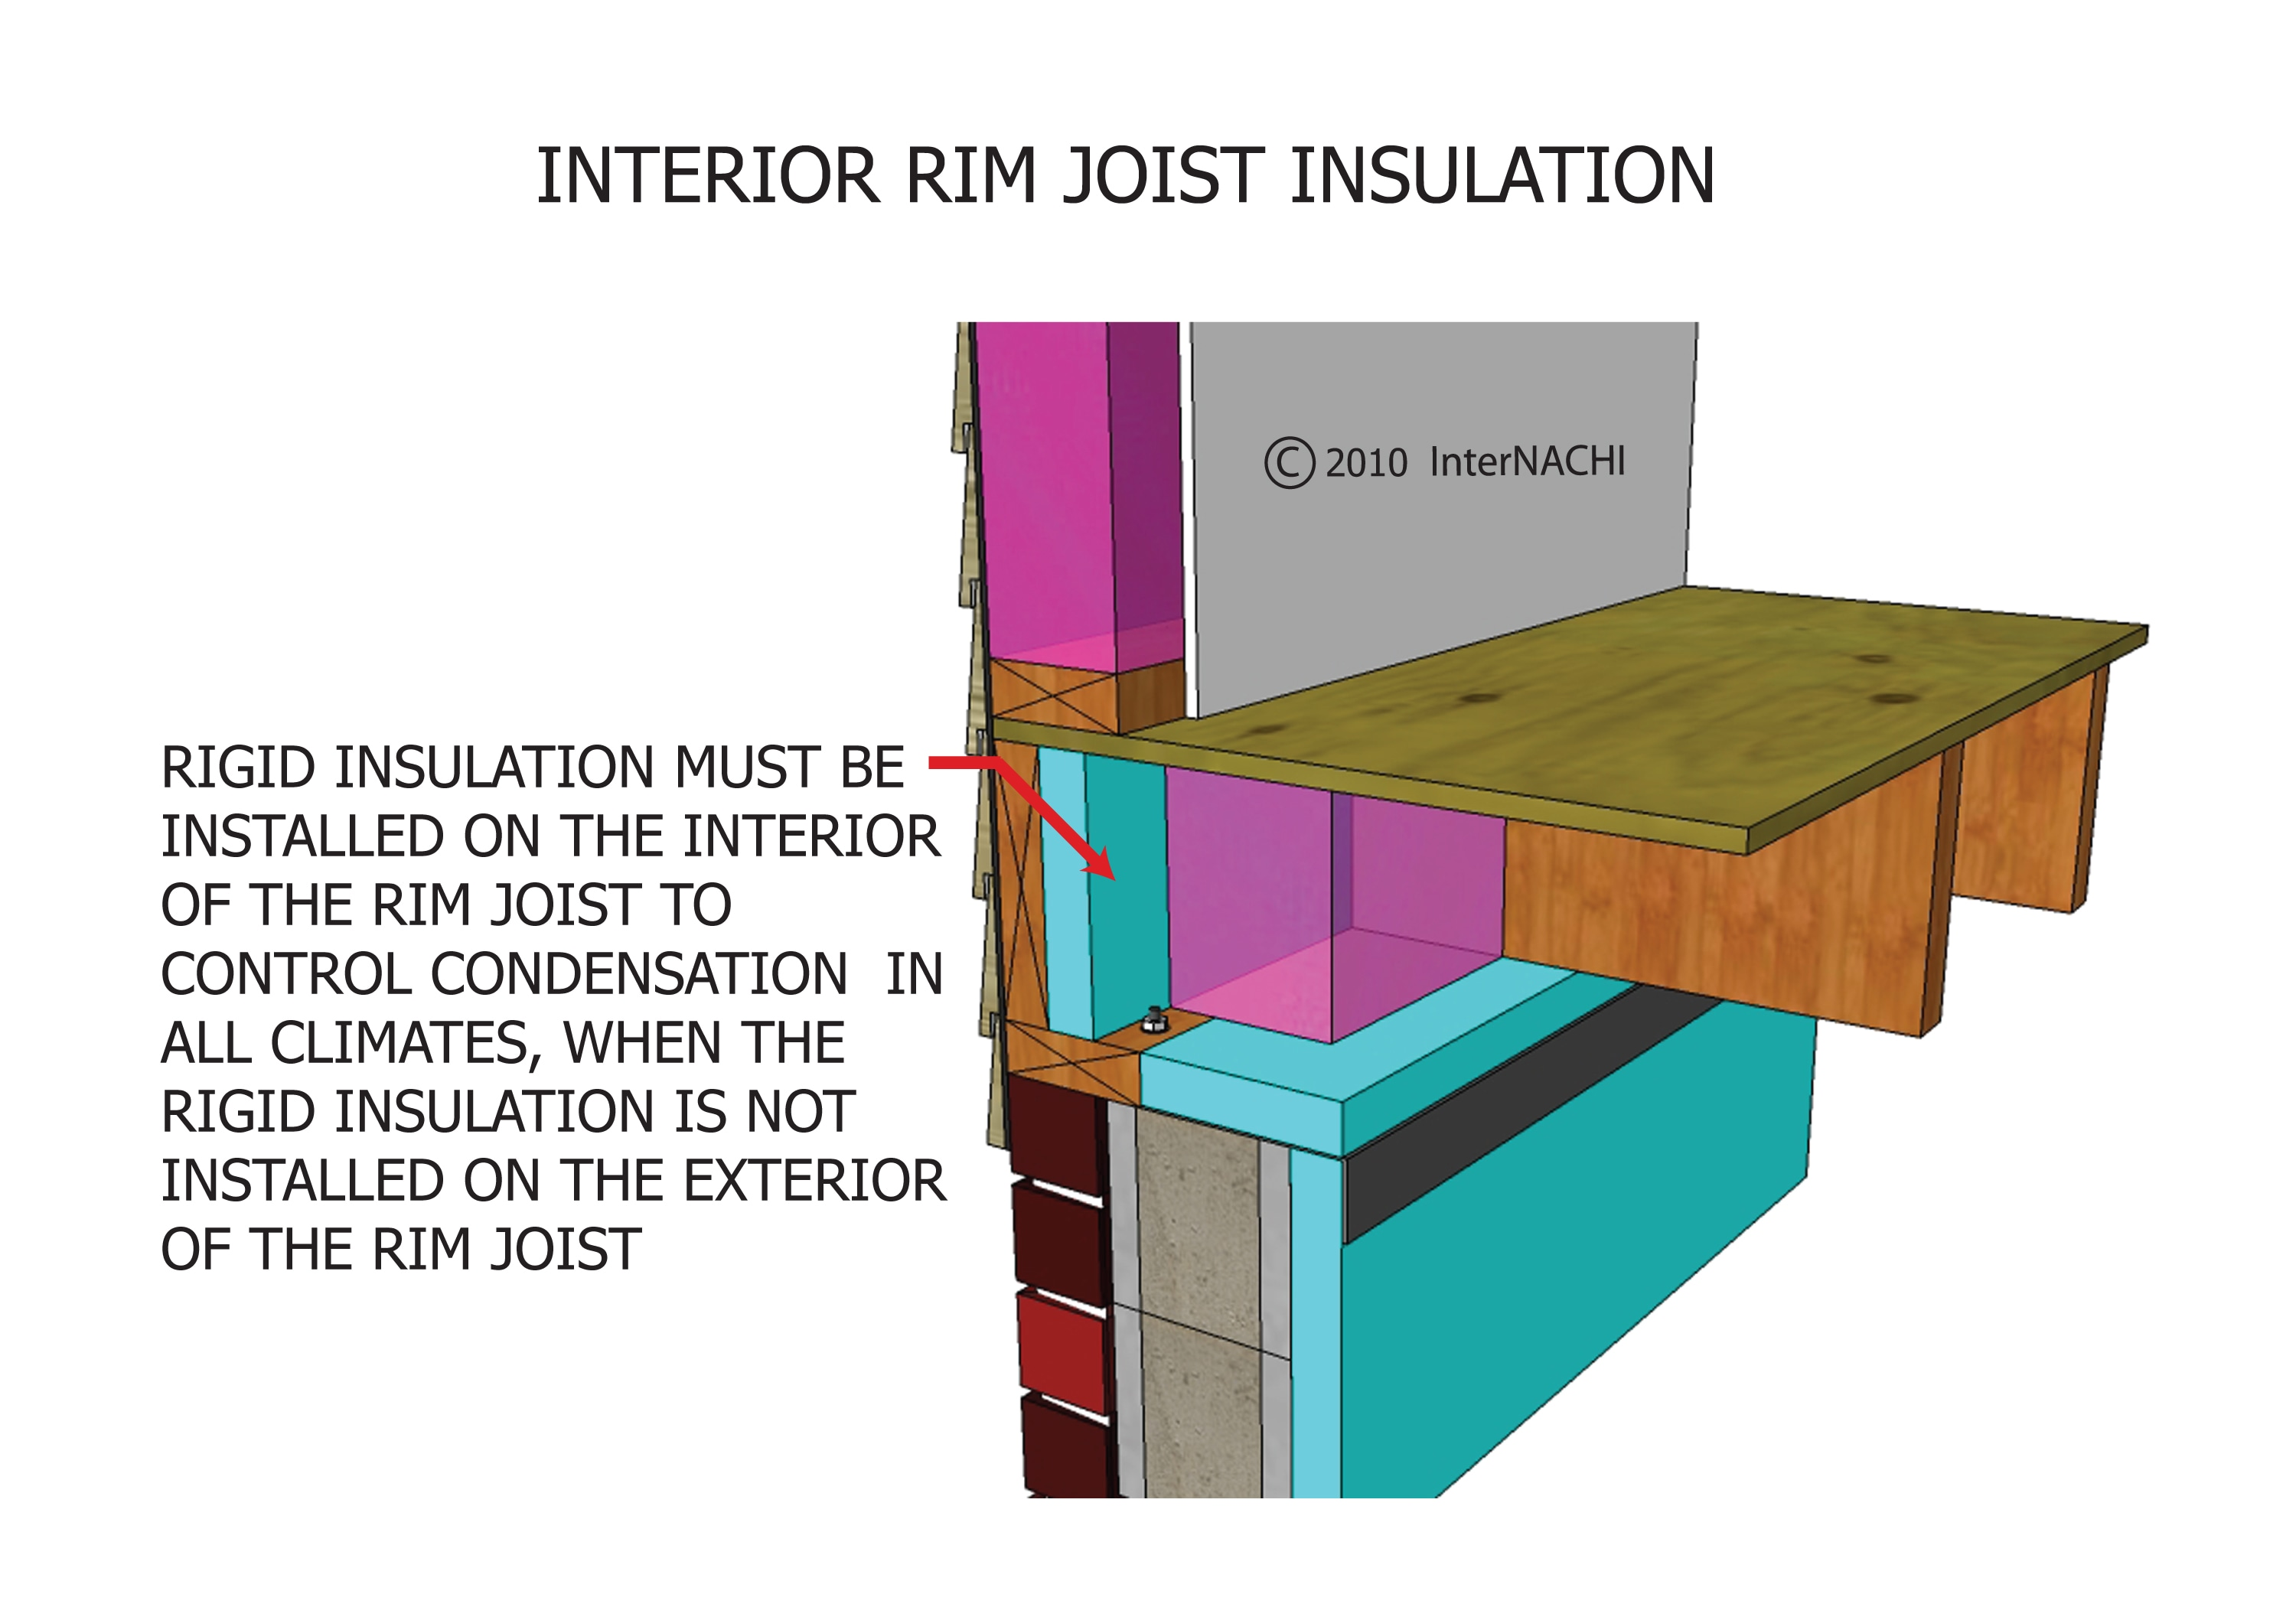 Interior rim joist insulation.